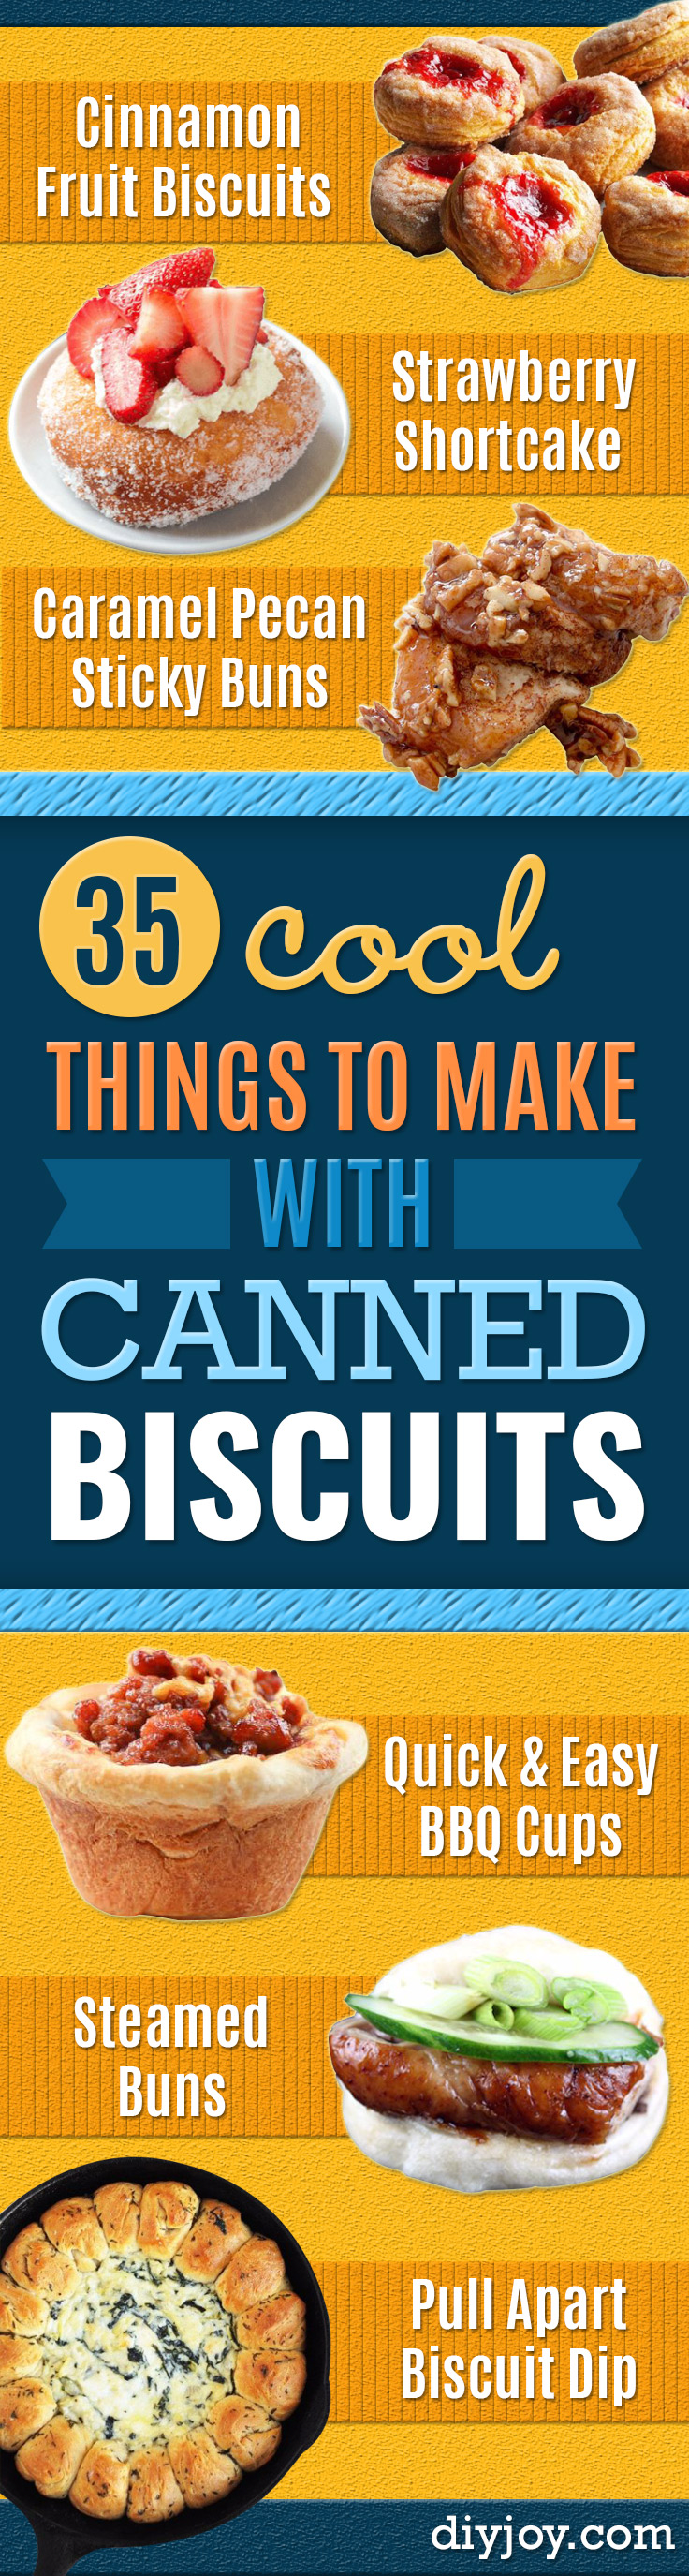 35 Recipes Made With Canned Biscuits